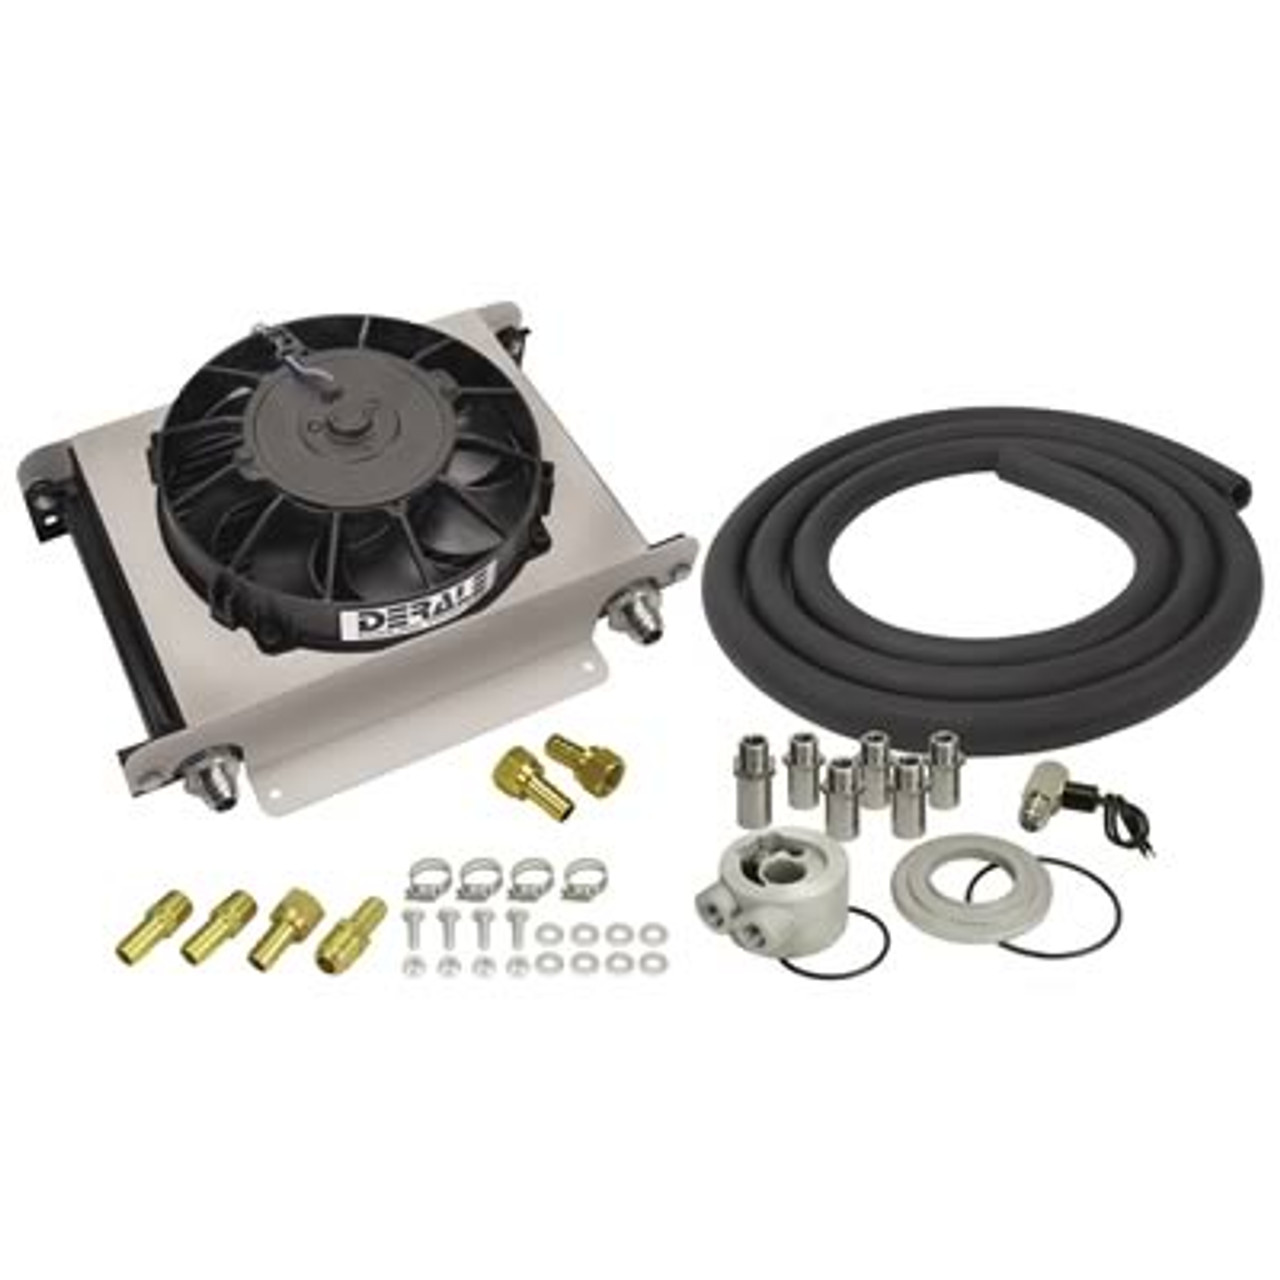 Derale Cooling Products Hyper-Cool Remote Fluid Coolers with Fan Kits 15660